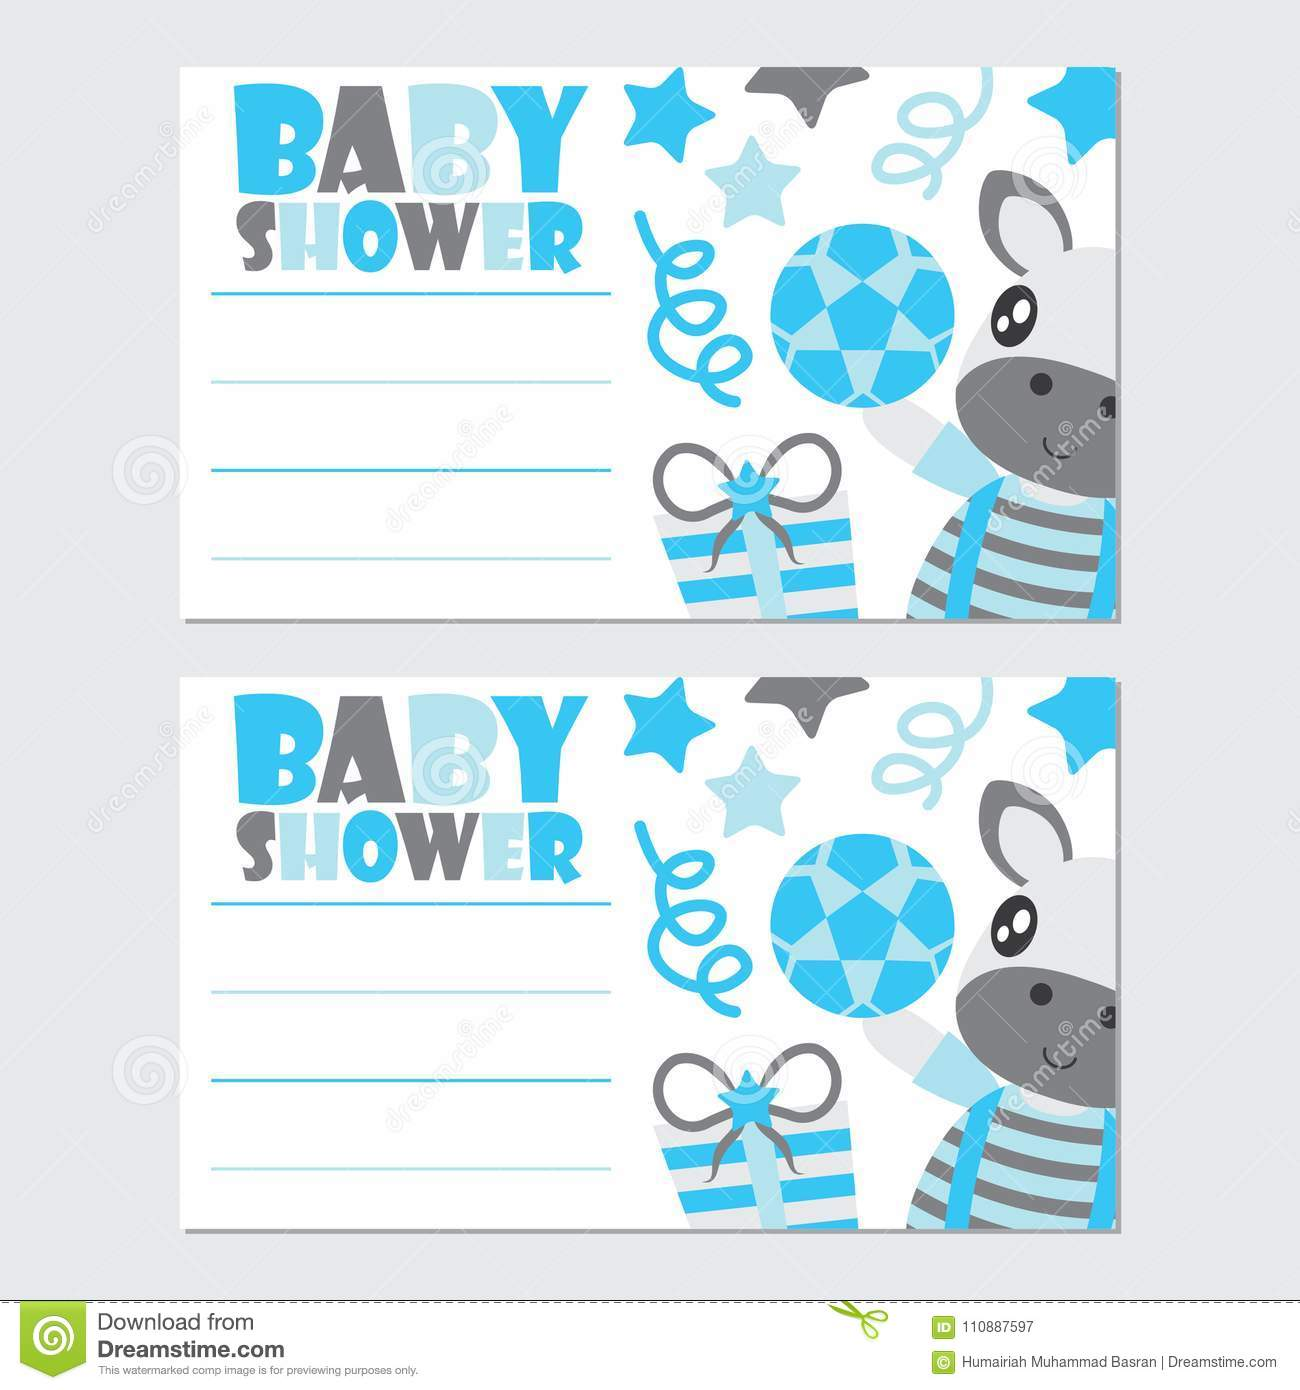 Cute Zebra Boy And Gifts Cartoon Illustration For Baby Shower Card